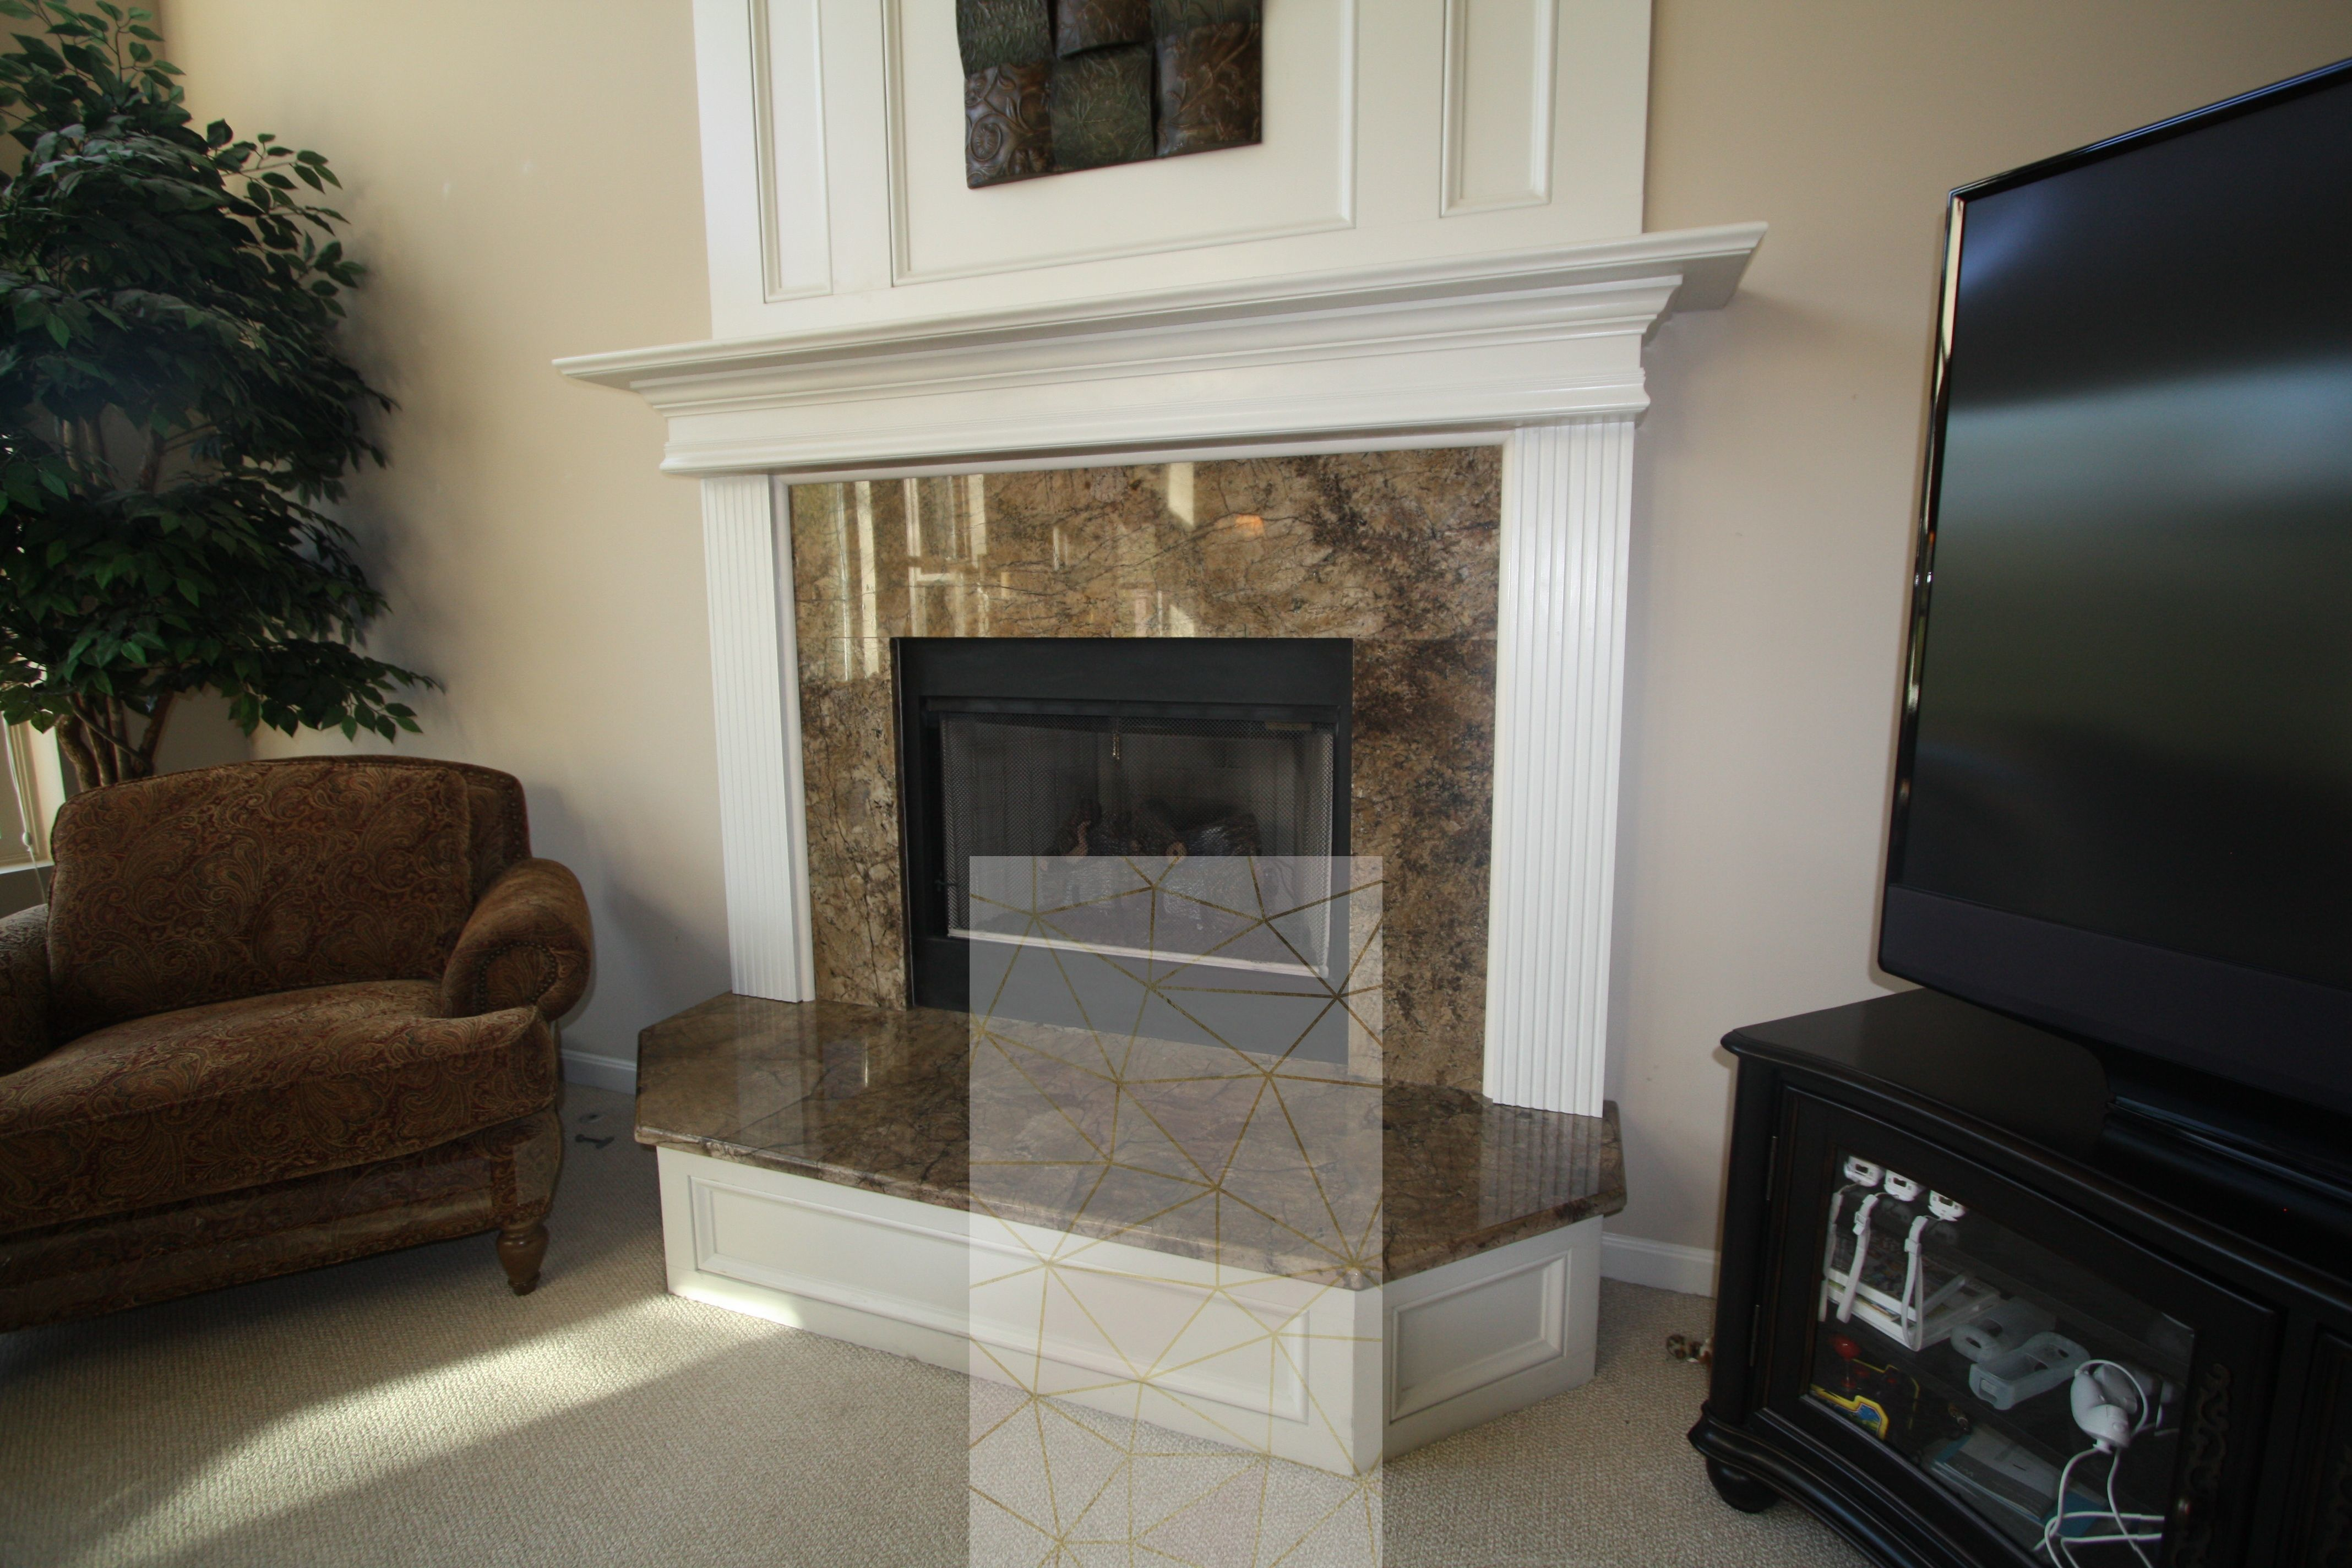 awesome tricks tall fireplace cabinets living room fireplace built rh pinterest com tall cabinets next to fireplace Tall Fireplace Ideas